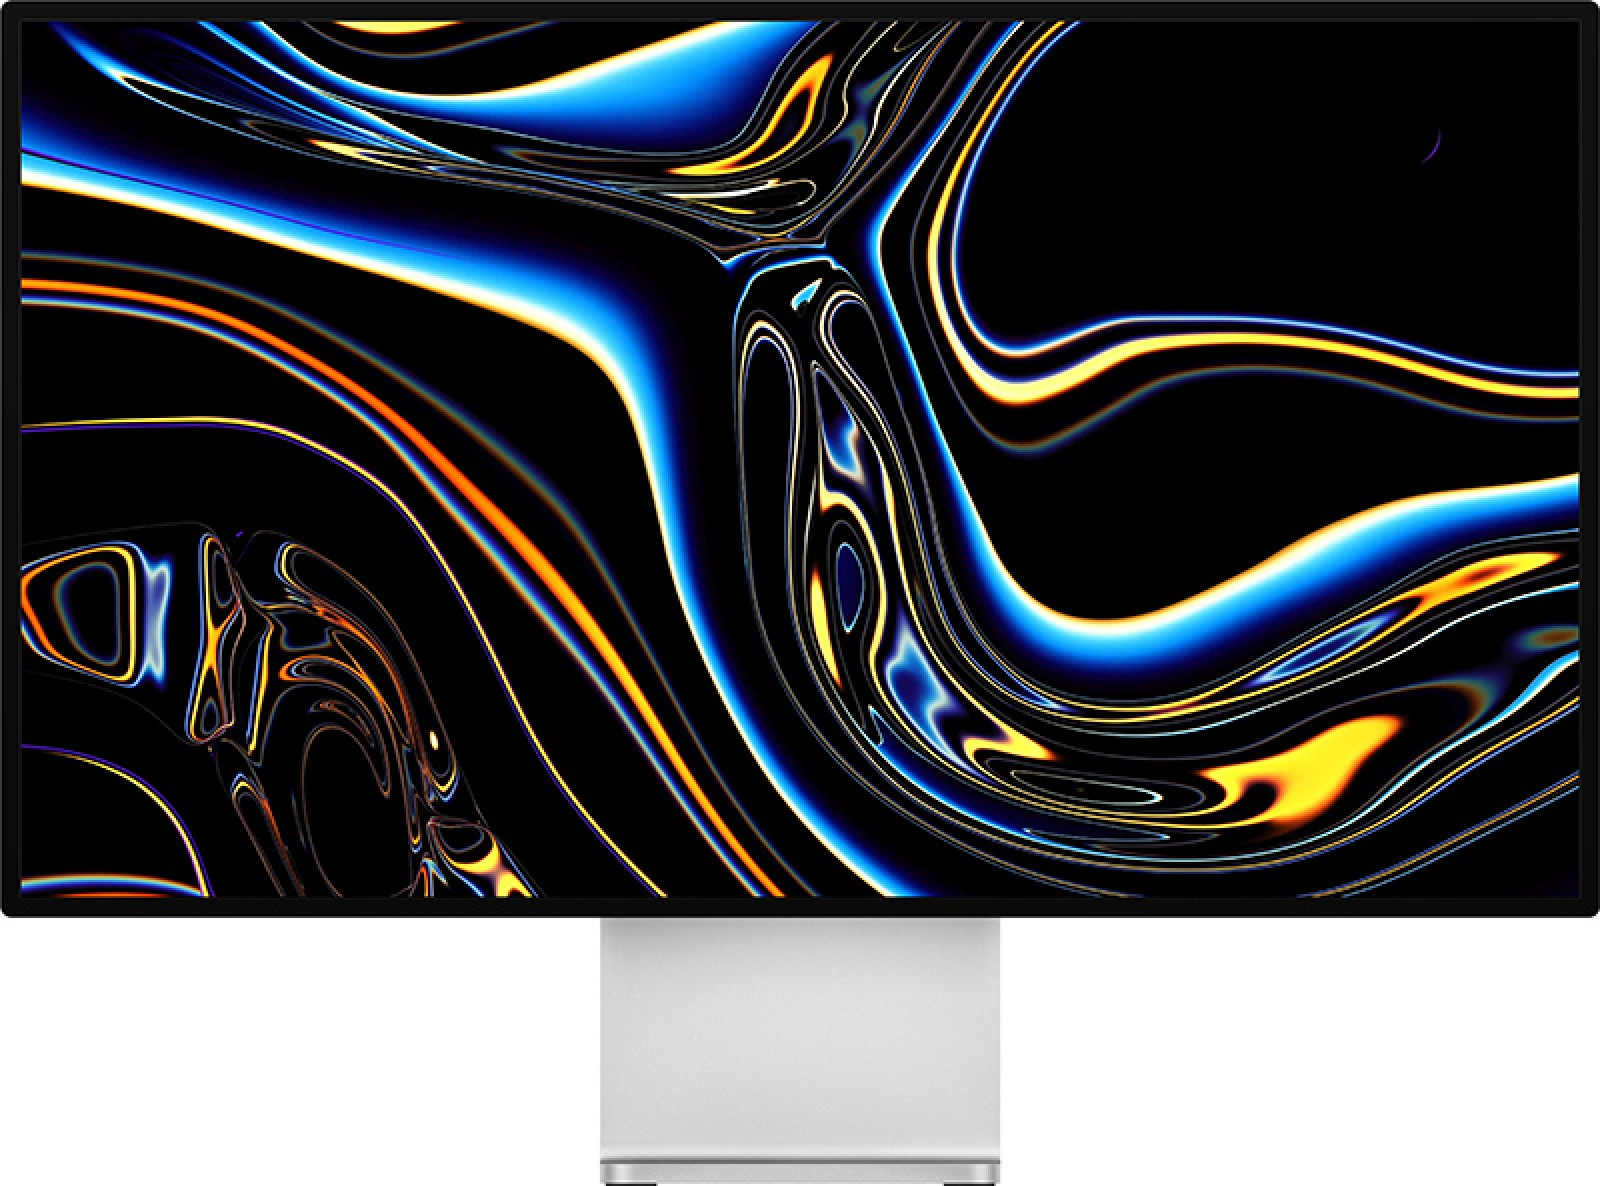 Apple's Pro Display XDR With Nano-Texture Can Only Be Cleaned With Special Apple-Provided Cloth